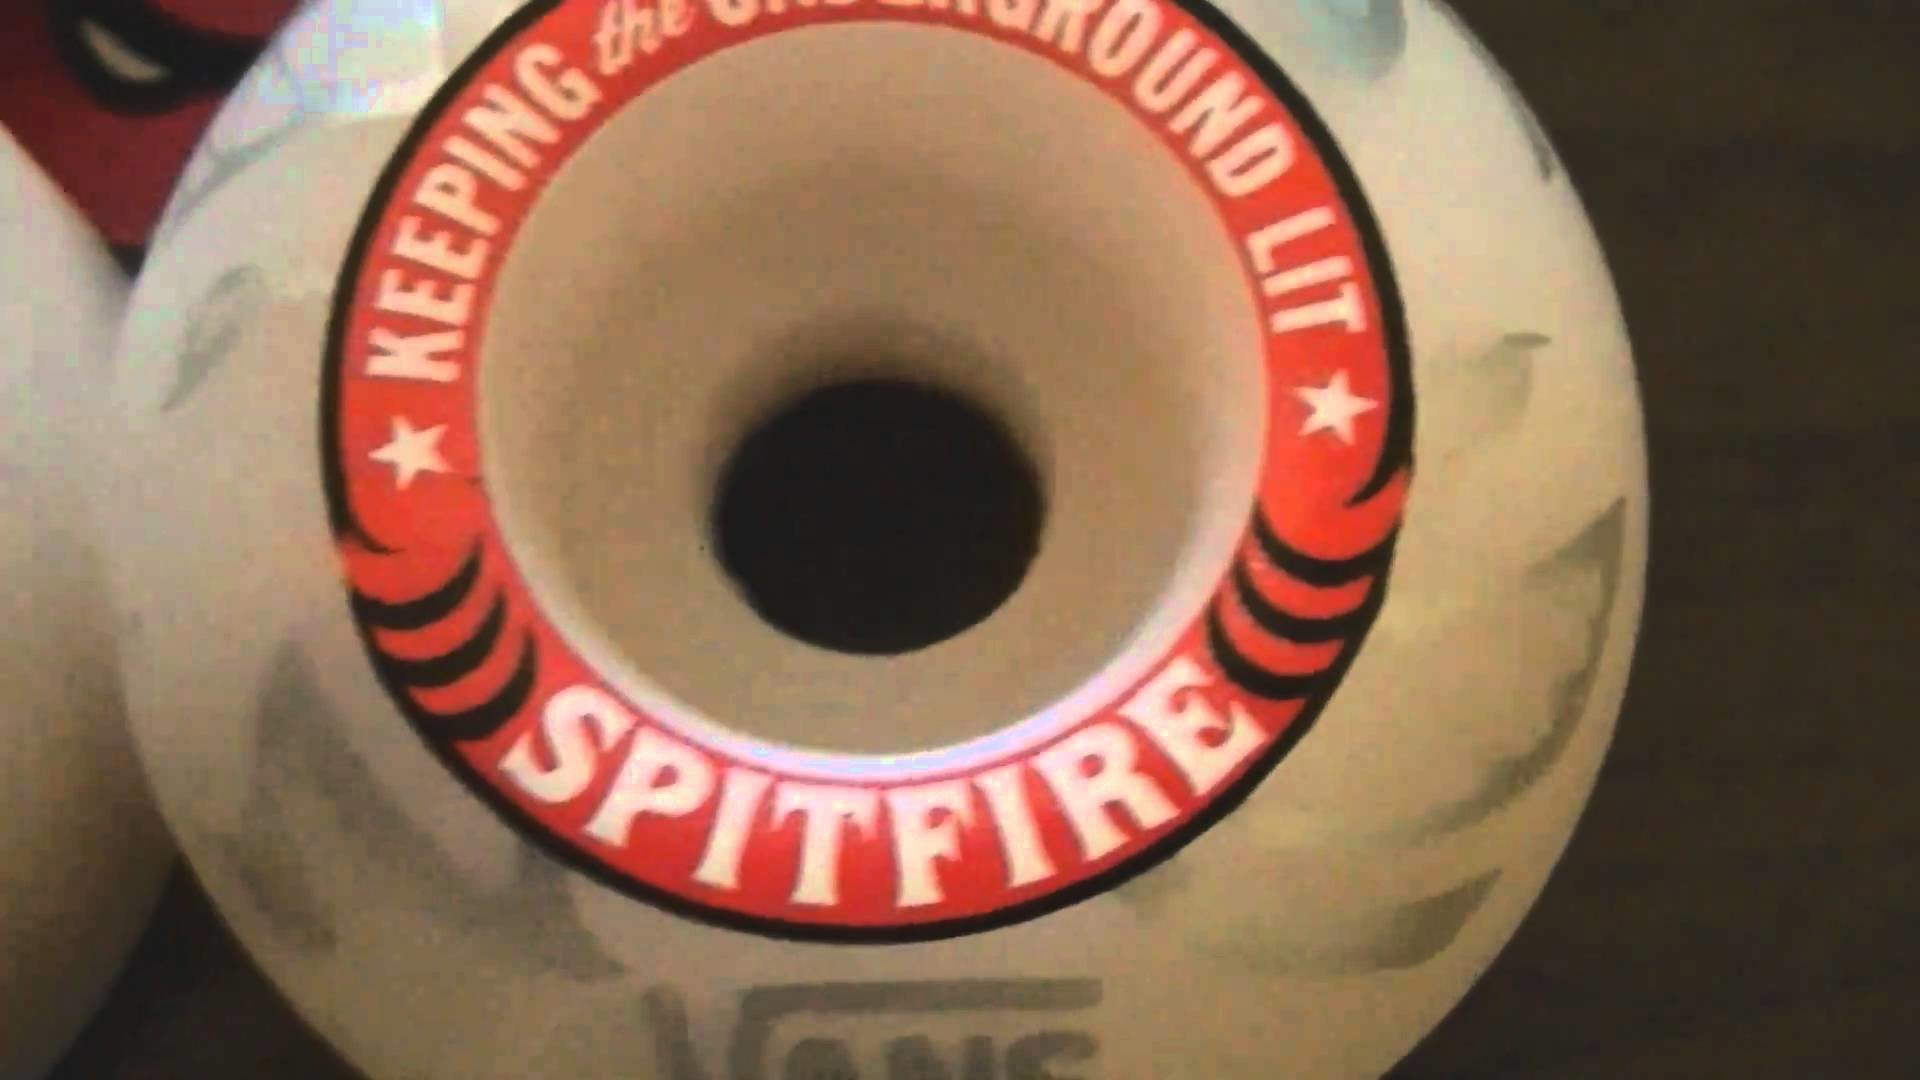 Res: 1920x1080, Vans Spitfire Collaboration Wheels Unboxing 52mm in HD